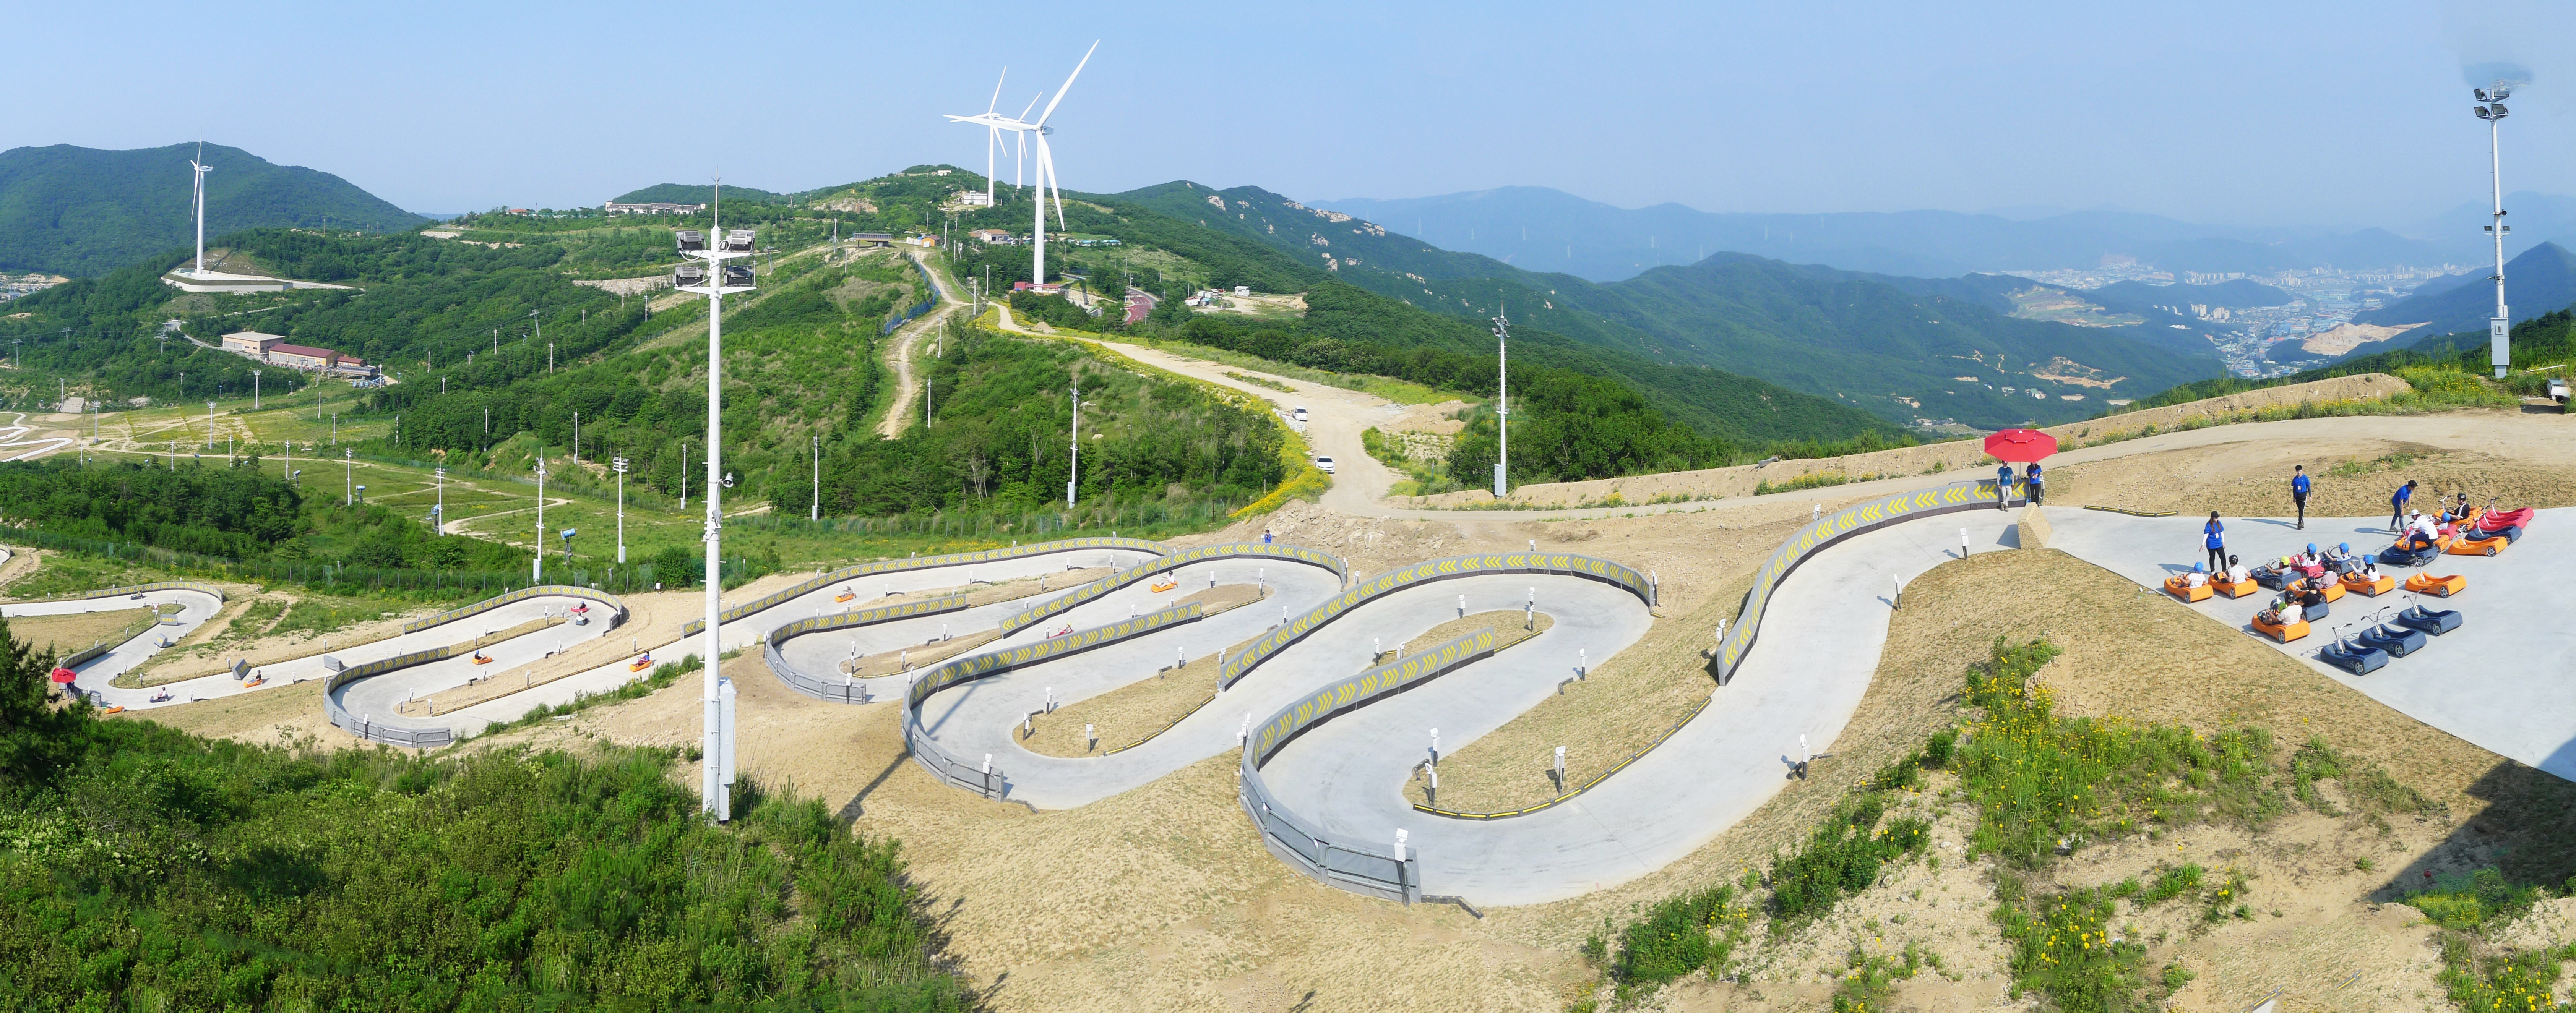 EdenValley Luge & East Busan Day Tour